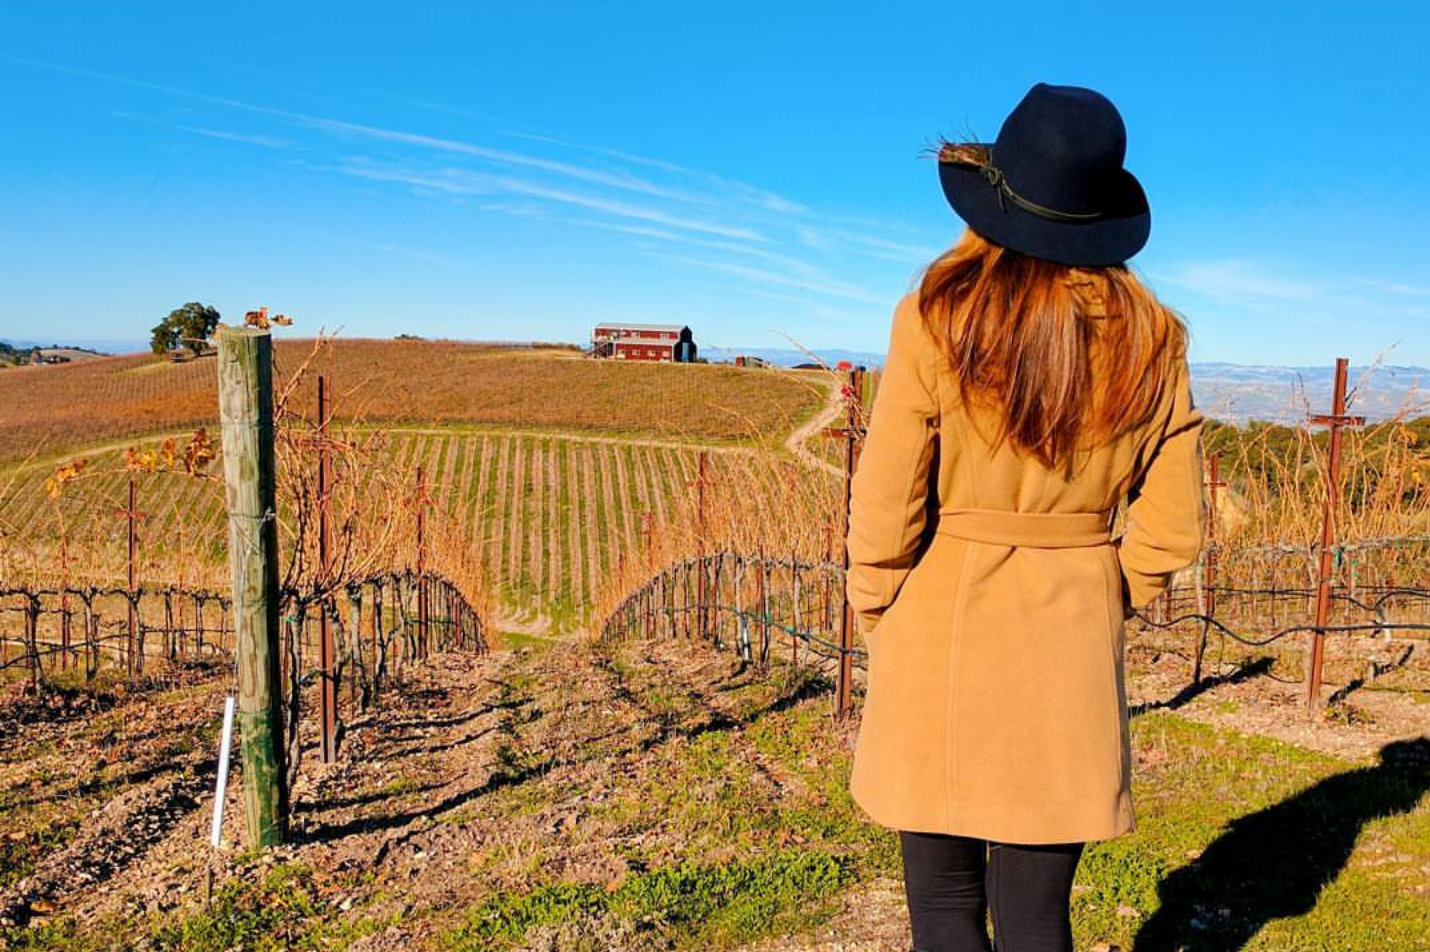 Paso Robles Travel Guide: Where to Eat, Drink, Sleep and Have Fun